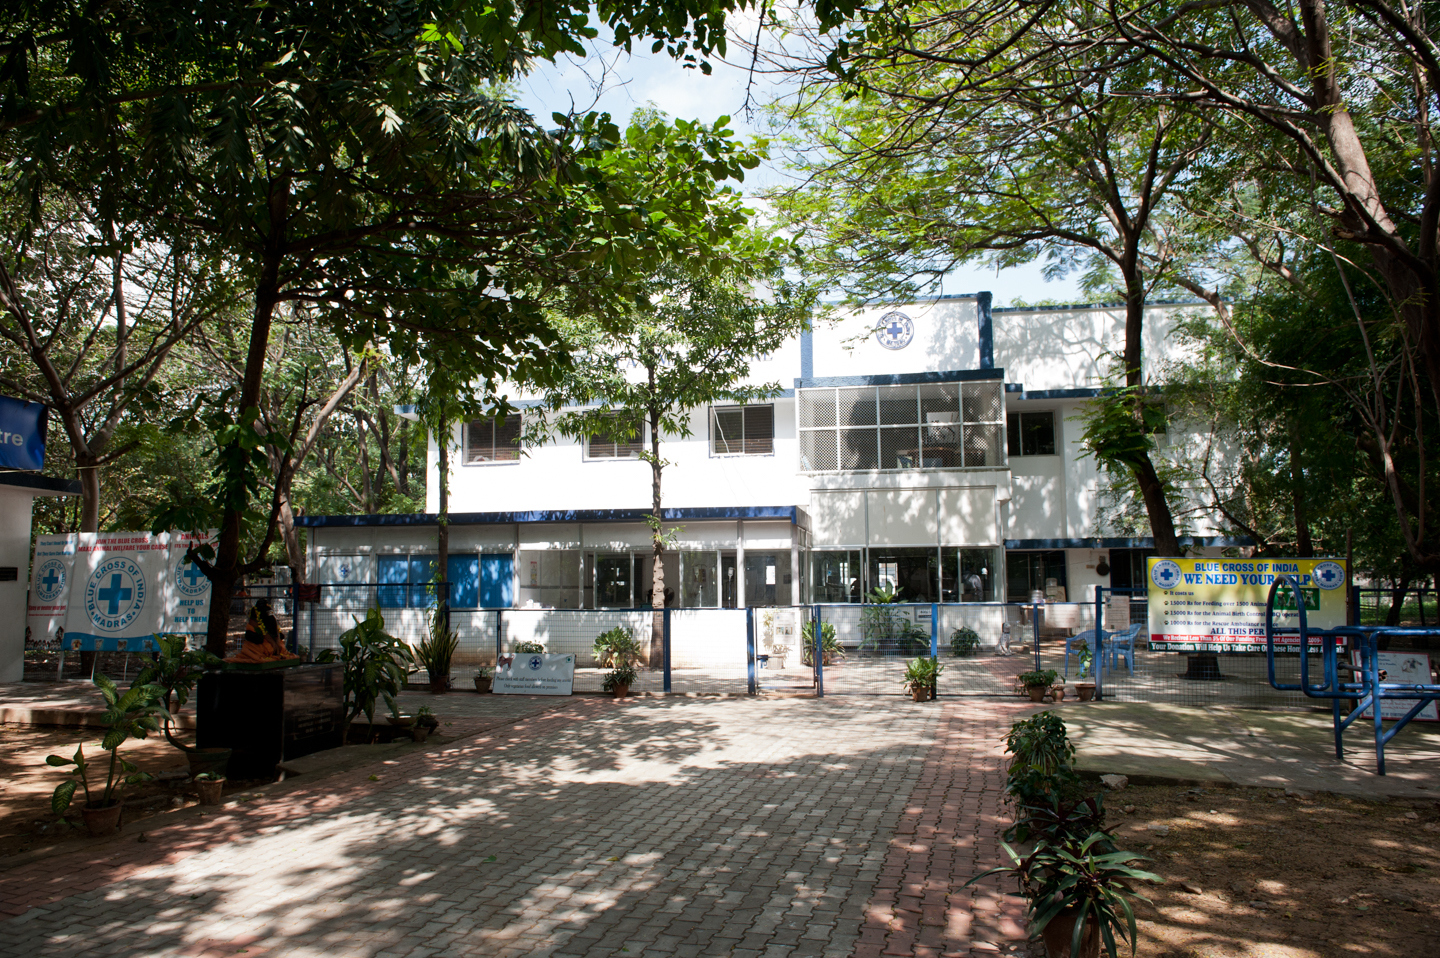 Blue Cross of India's main building